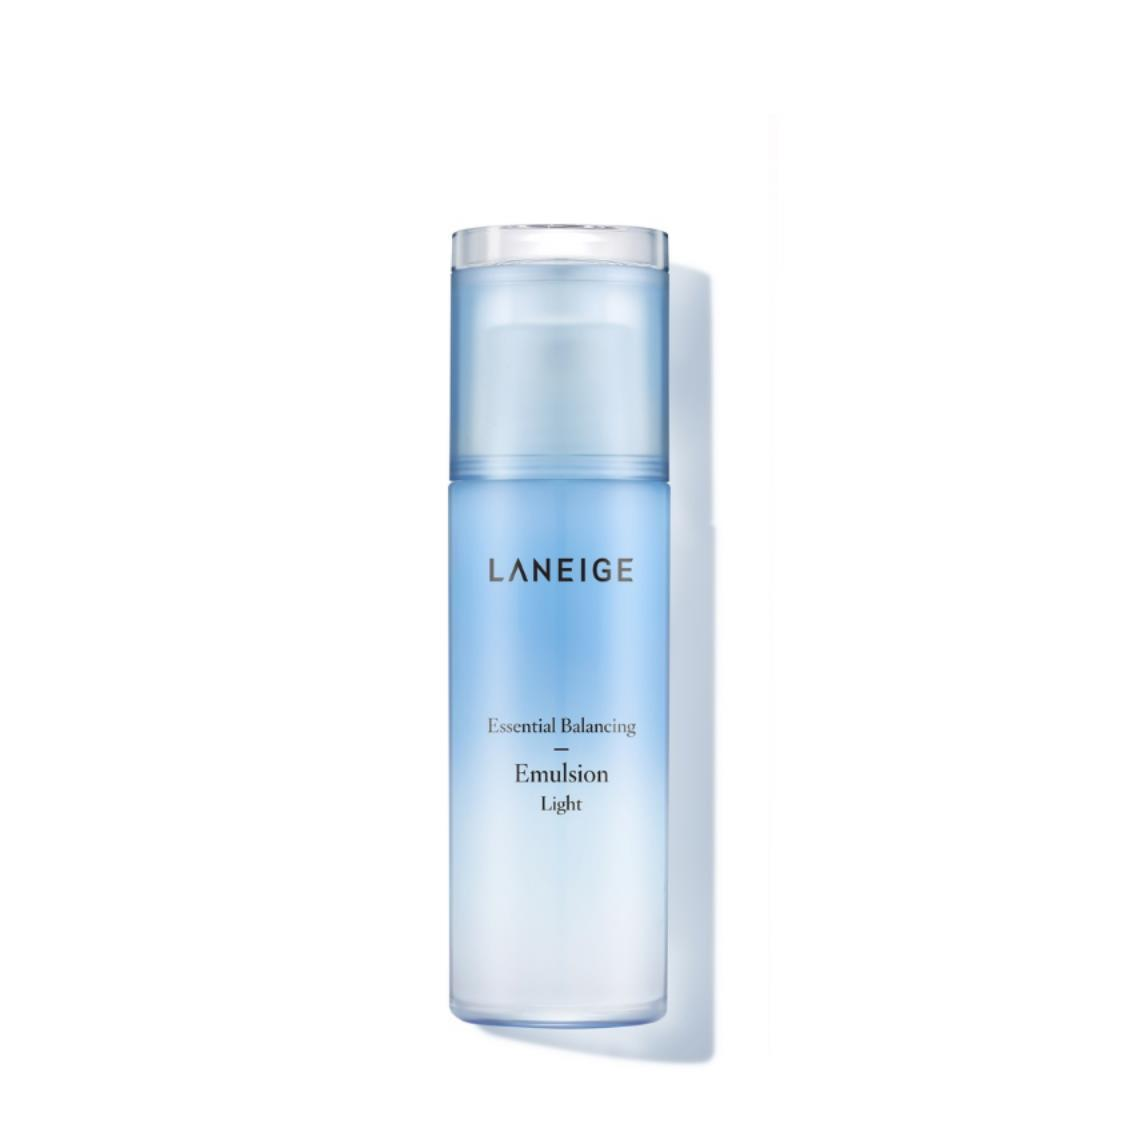 Essential Balancing Emulsion Light 120ml